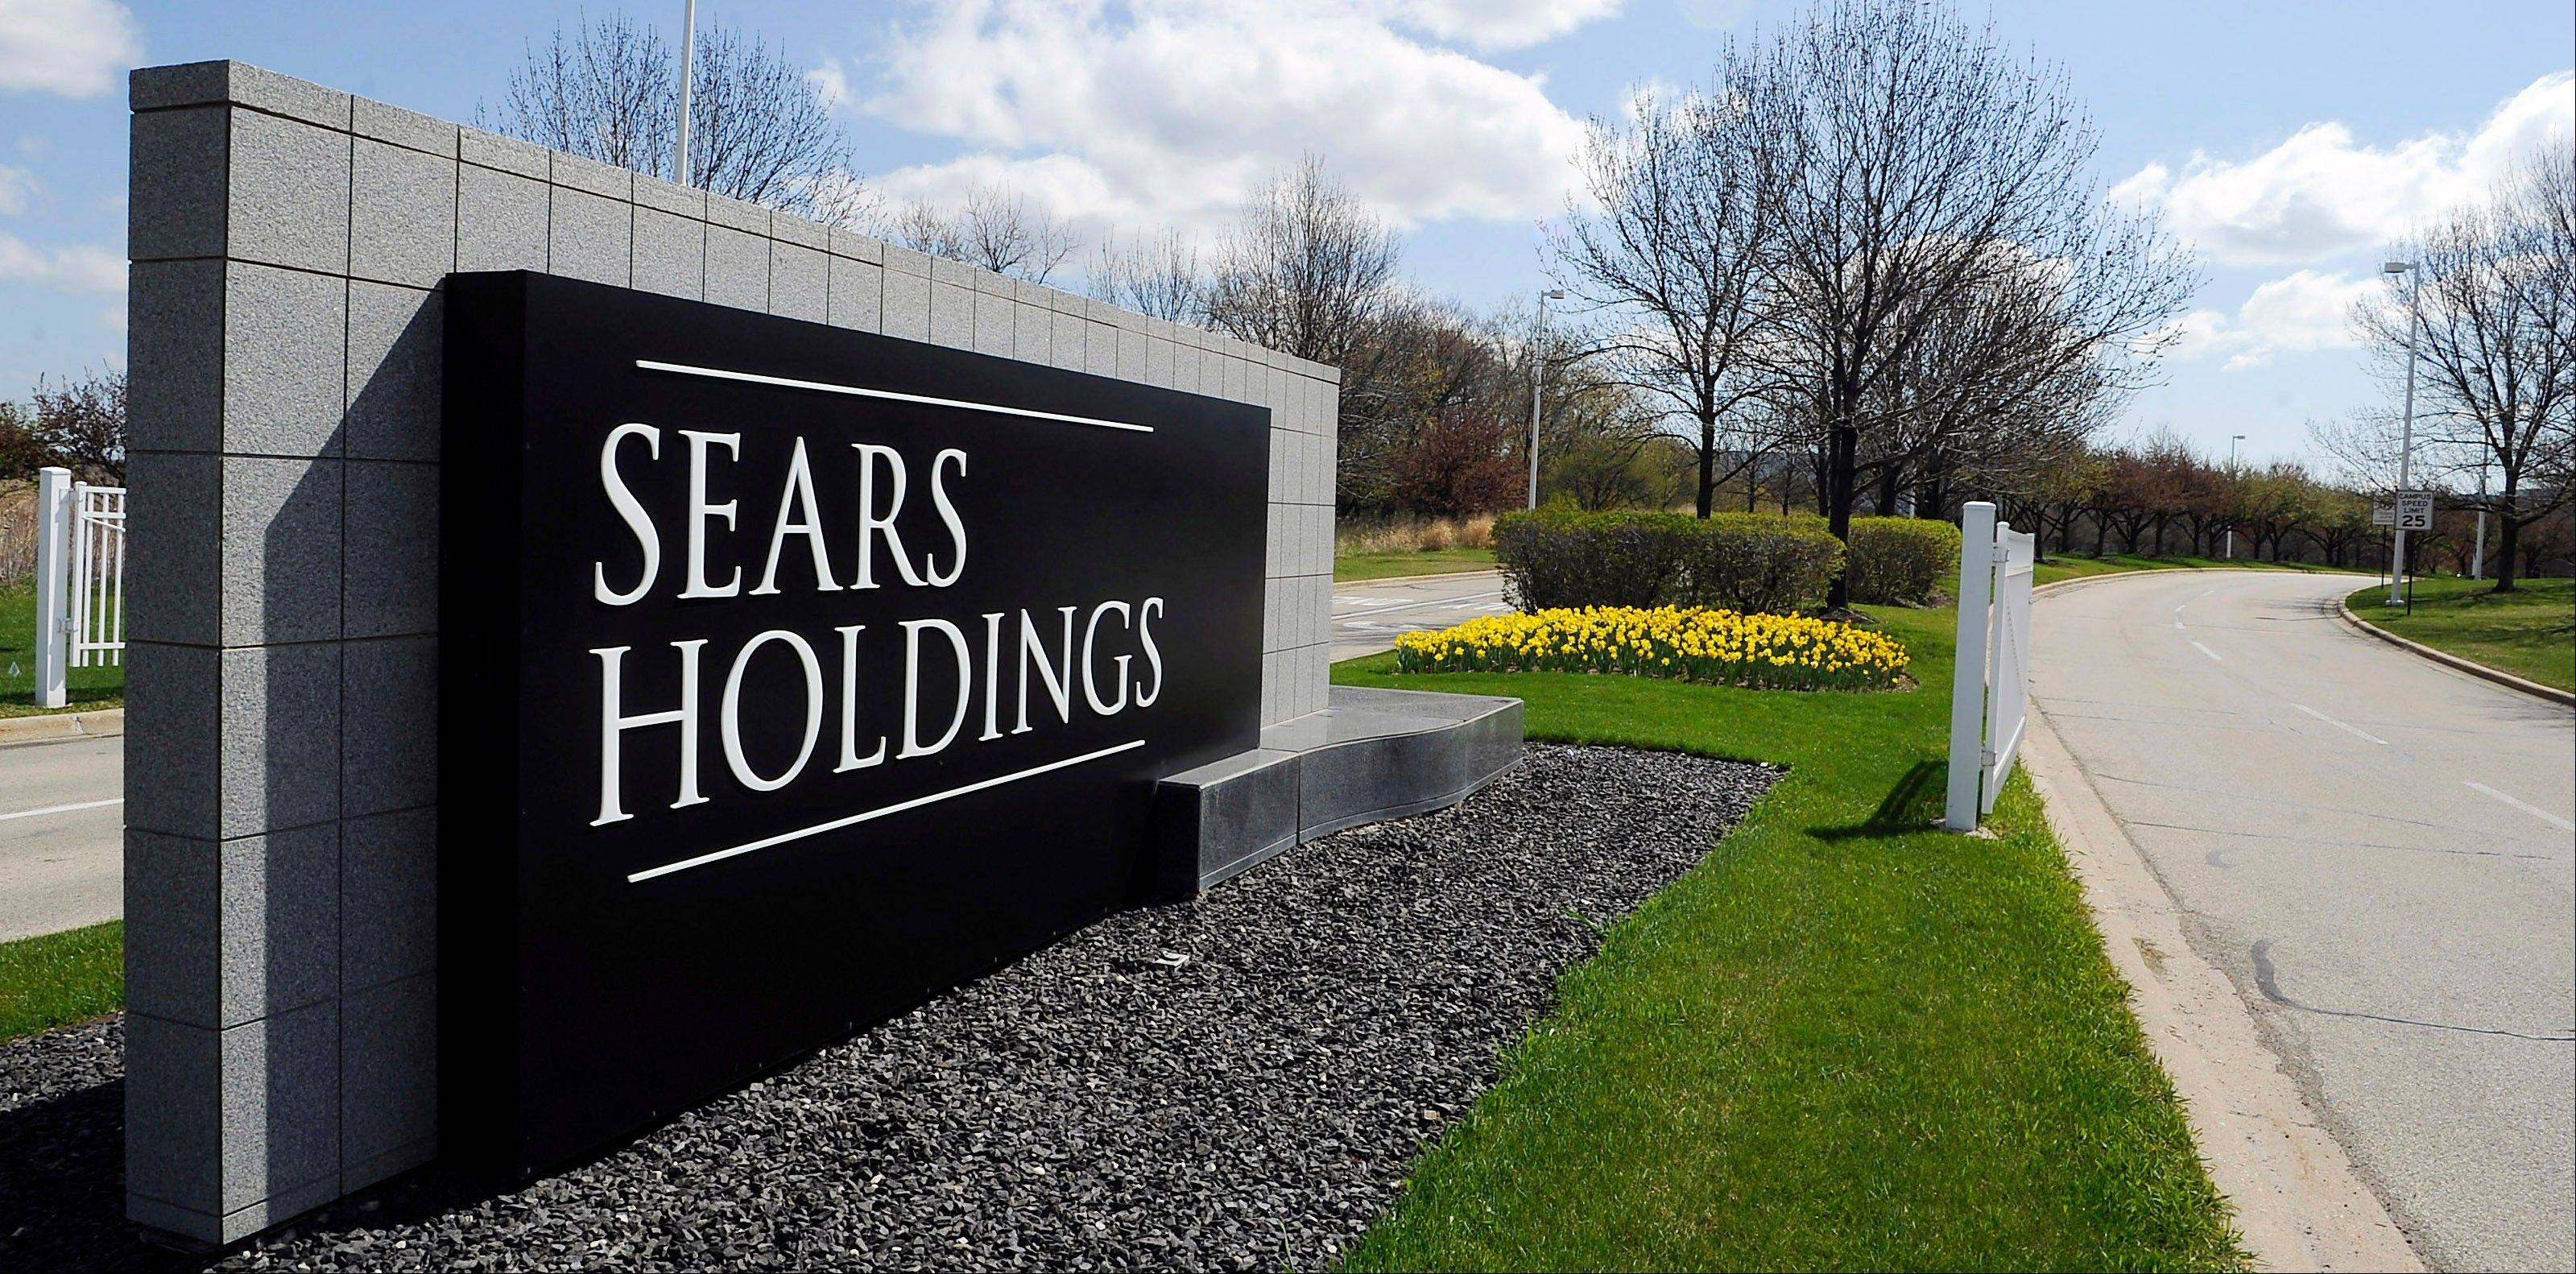 The entrance to the Sears Holdings Corp. Prairie Stone campus area in Hoffman Estates. Sears is narrowing its search to Washington, D.C. and Boston, but the company is using the discussions as leverage to sweeten the incentives to stay in Illinois.